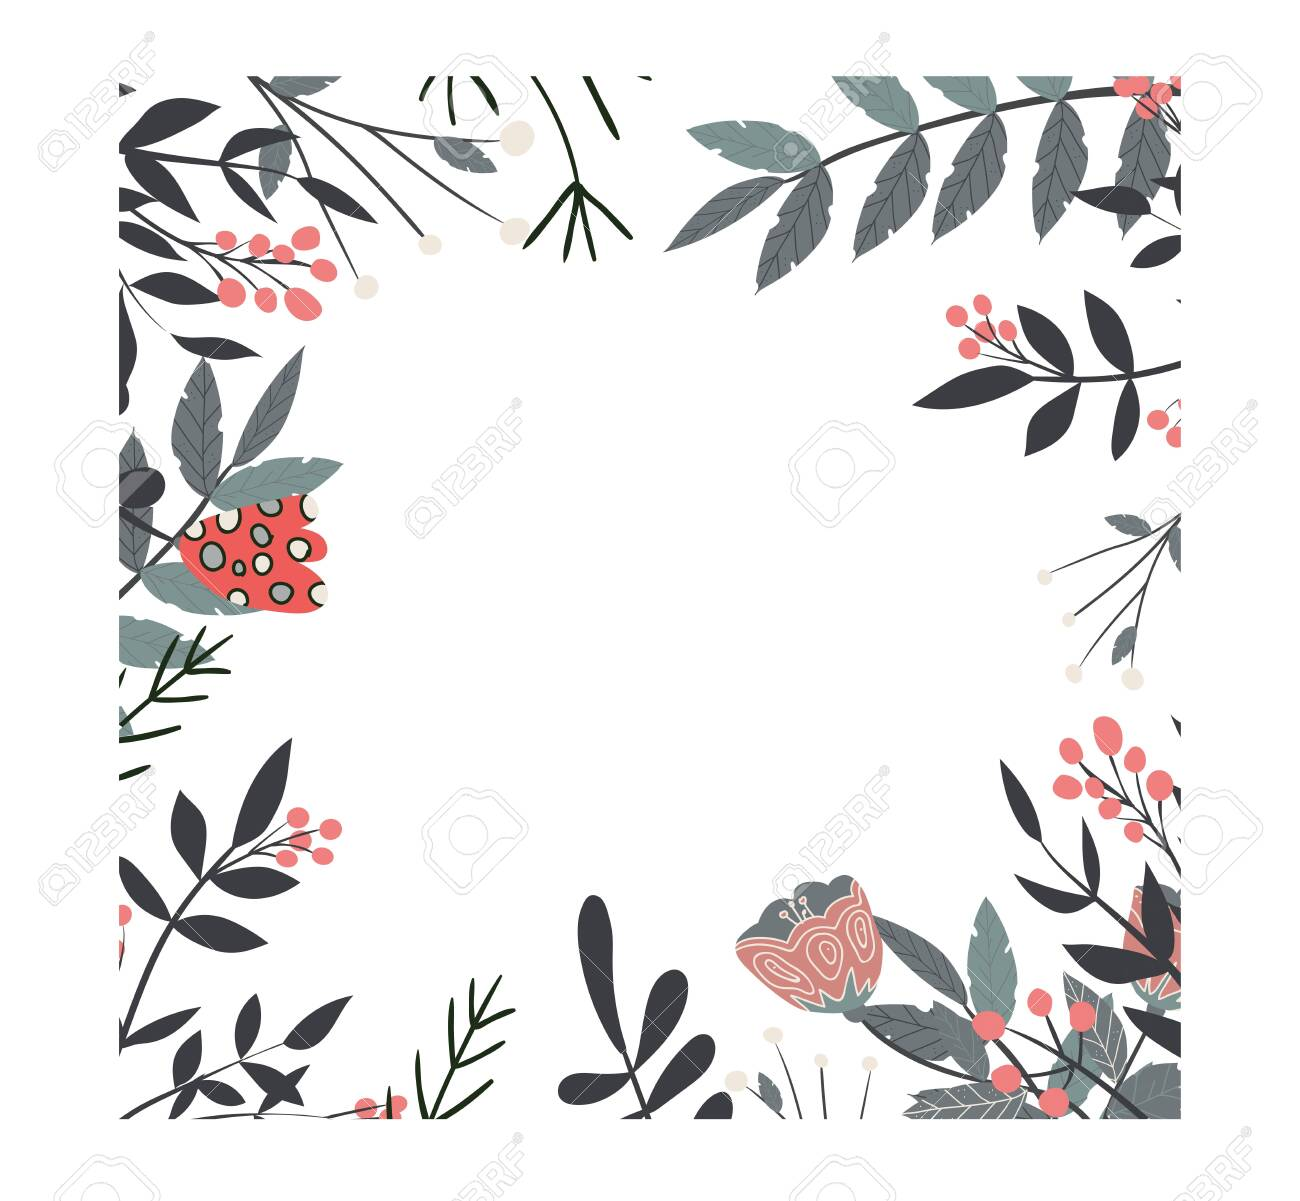 Decorative floral frame with twigs and flowers, vector illustration - 124265199